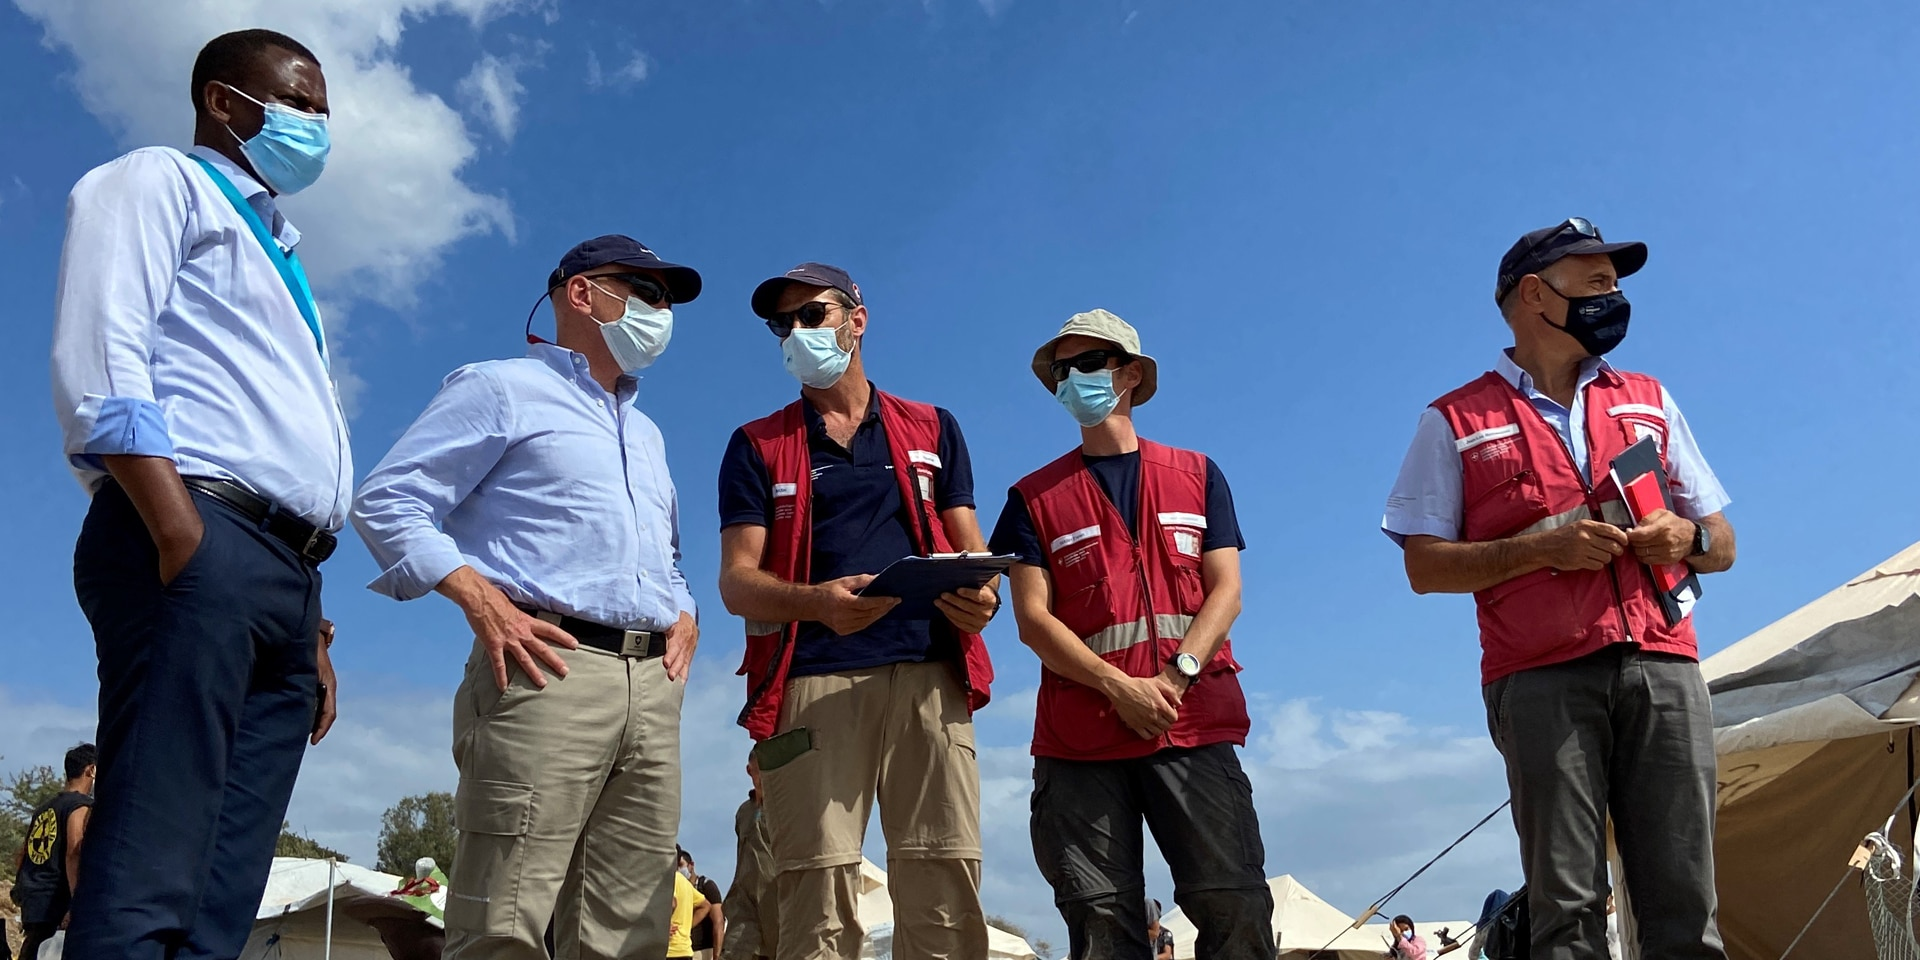 The Head of Switzerland's Humanitarian Aid Department Manuel Bessler talks to members of the Swiss Humanitarian Aid Unit and Spiros Habimama, deputy director of the Lesbos camp, during a site visit.